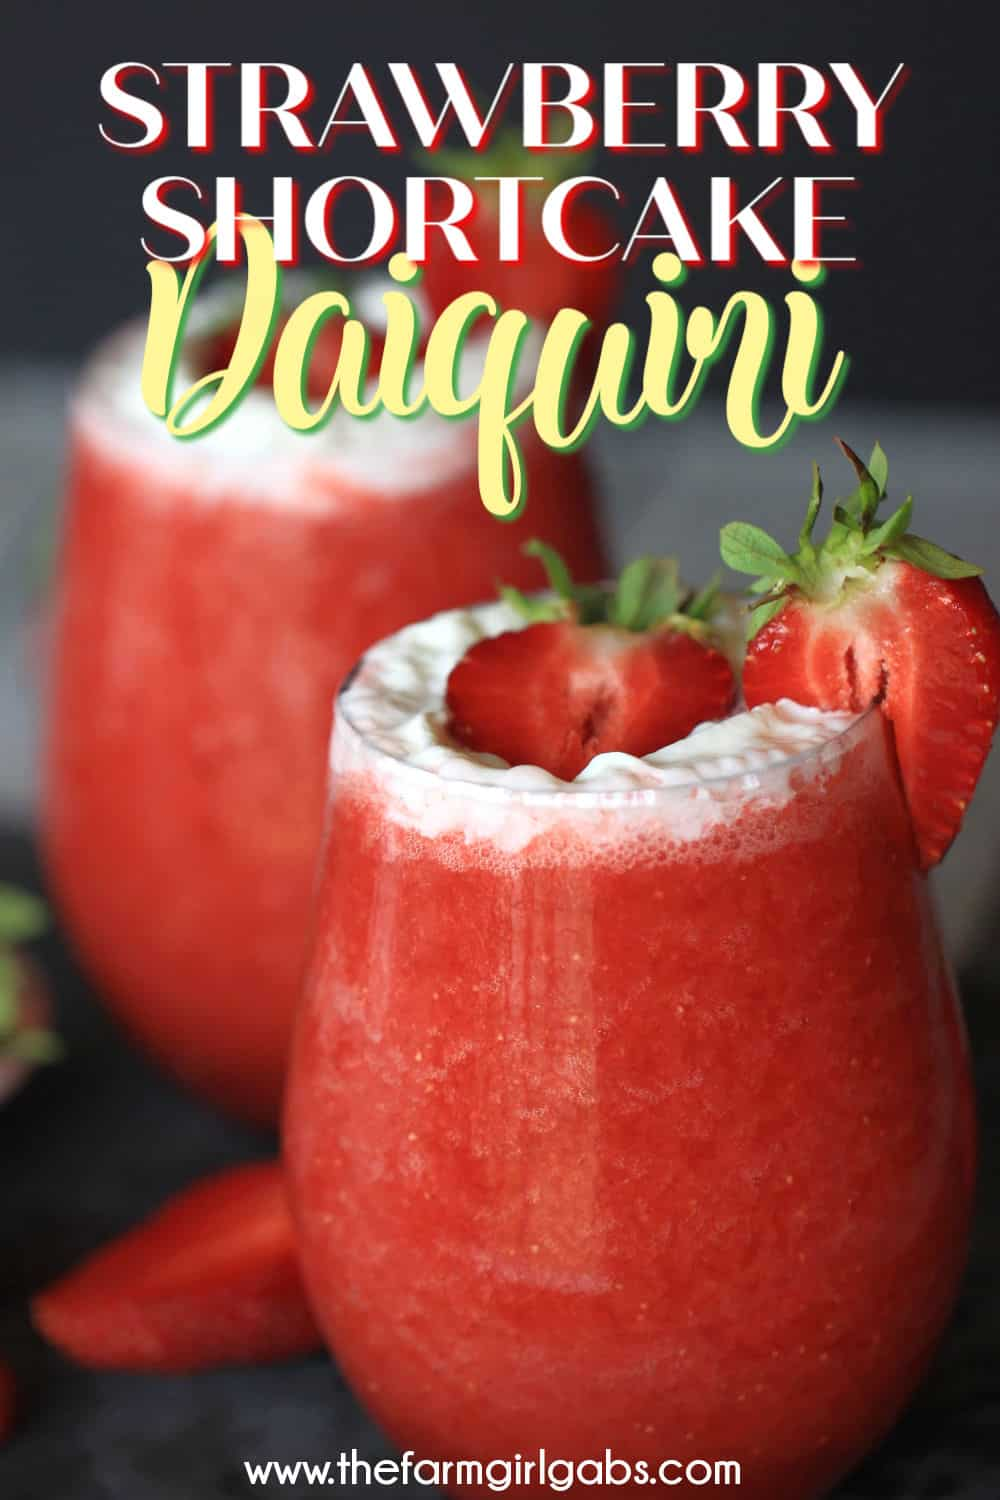 Cheers to Strawberry season. With just a few simple ingredients, you can make your own Strawberry Shortcake Daiquiris at home. Skip the mix and make fresh strawberry daiquiris at home using this easy recipe. It's the perfect slushy cocktail for cooling down in warmer weather! #strawberrydaiquiri #cocktails #slushie